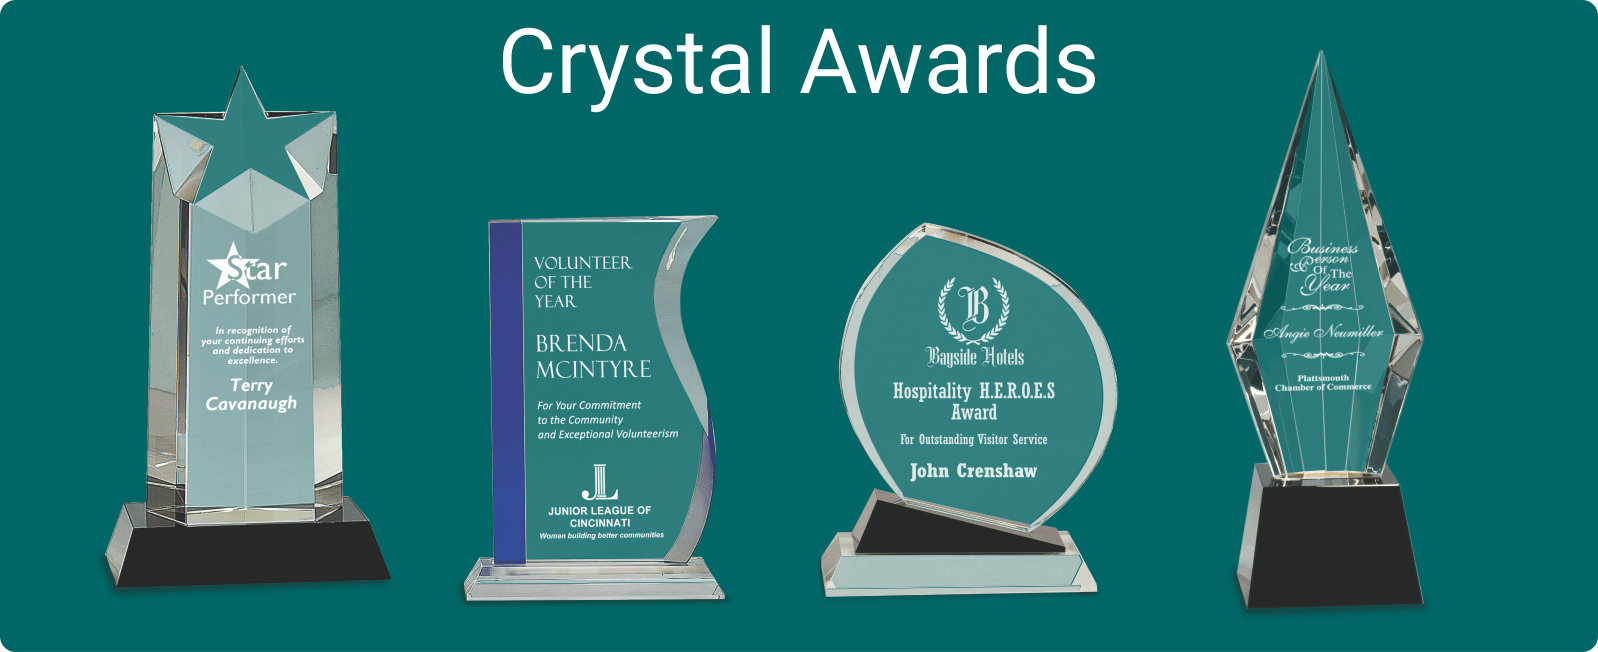 Crystal Awards - Perfect for your company